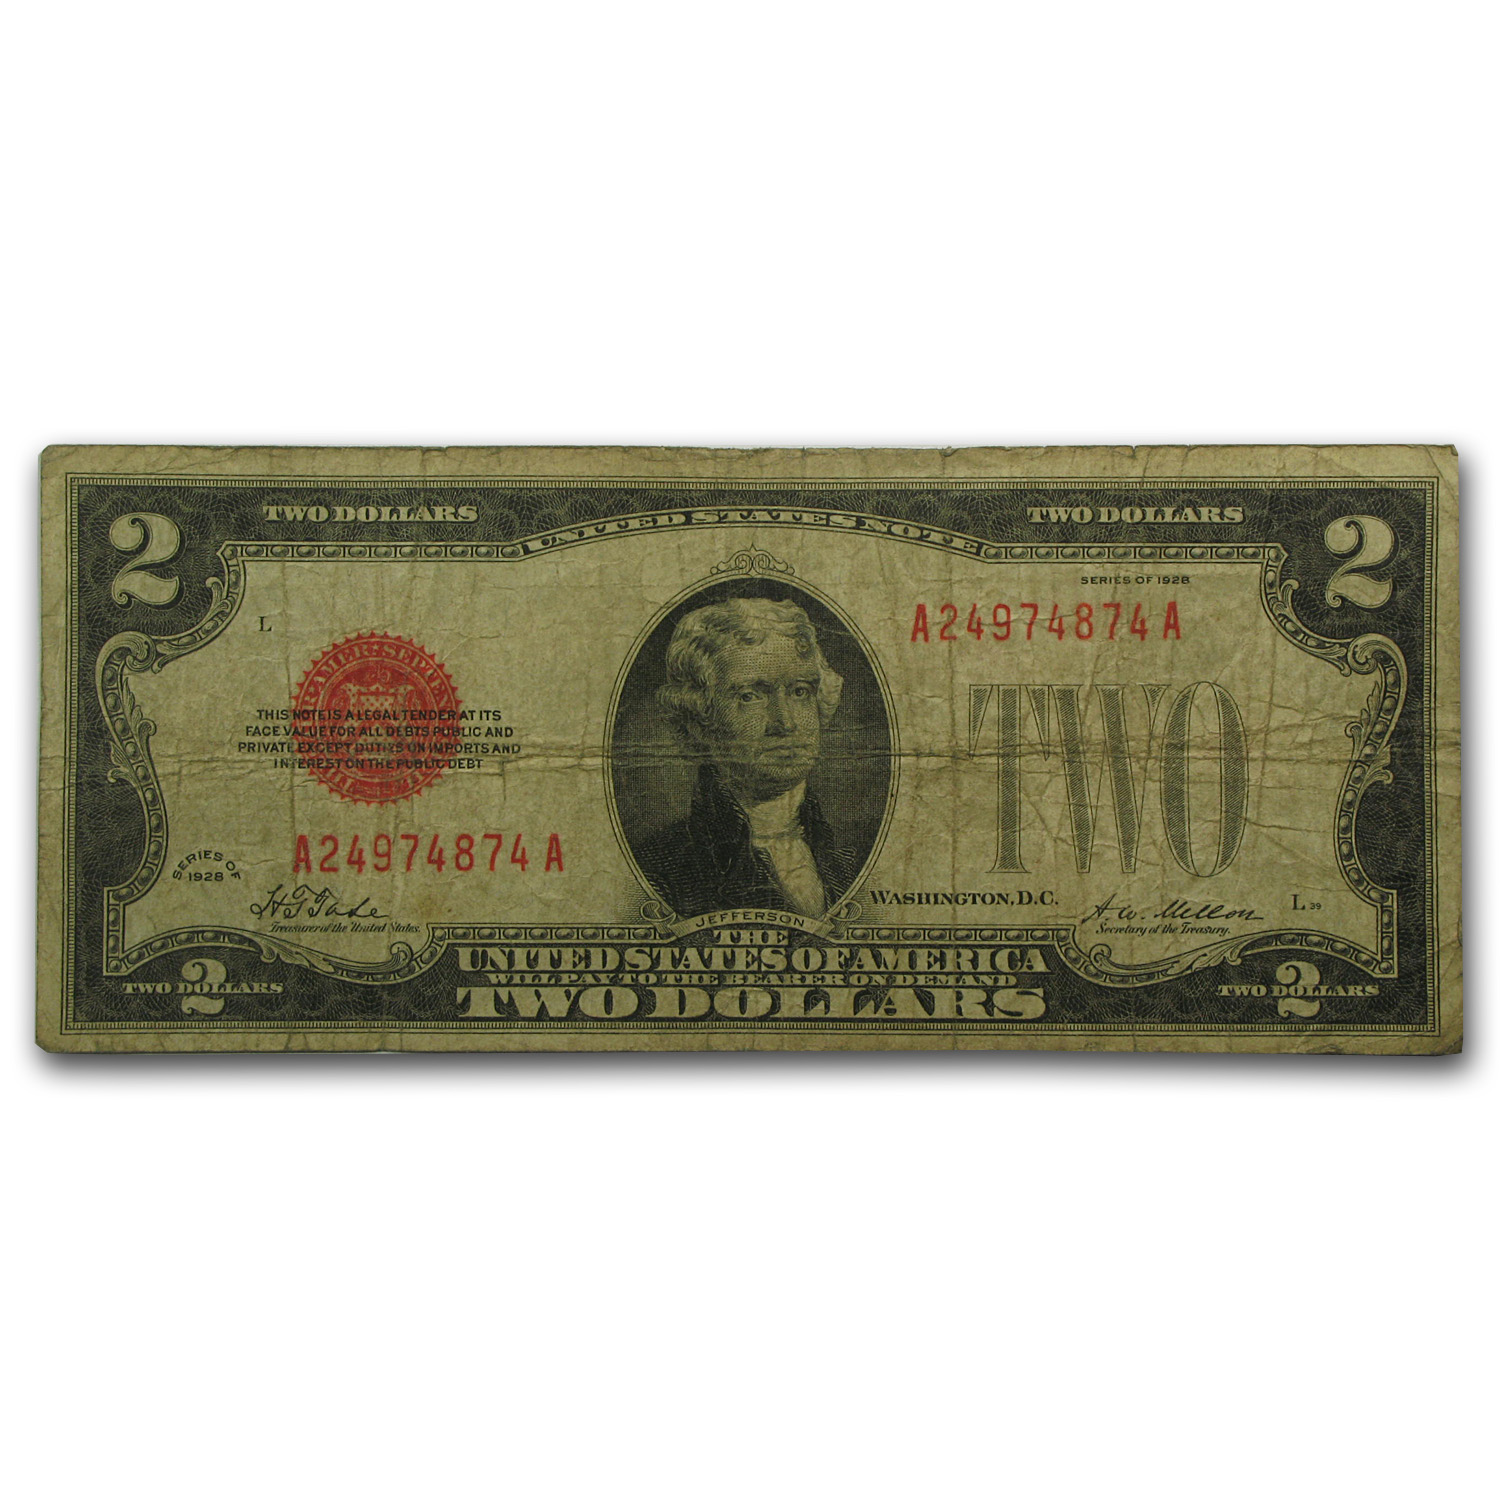 1928 $2.00 U.S. Note Red Seal VG